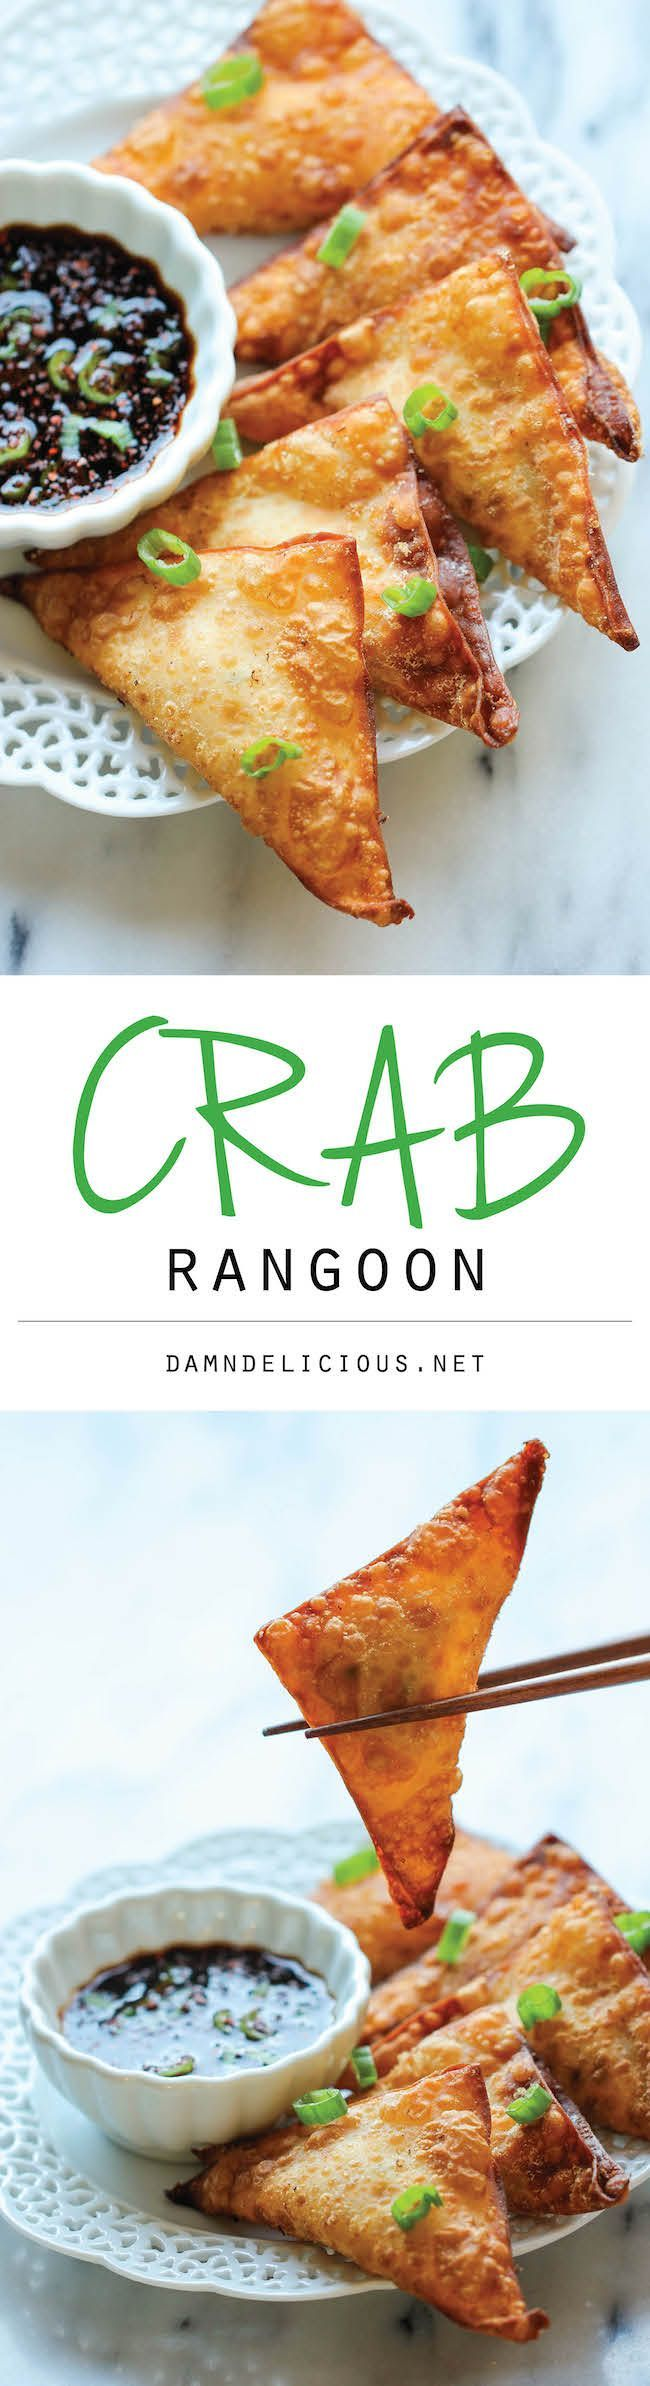 JANUARY Crab Rangoon - This crisp, fried wonton is loaded with cream cheese and crab goodness, and it's an absolute party favorite!